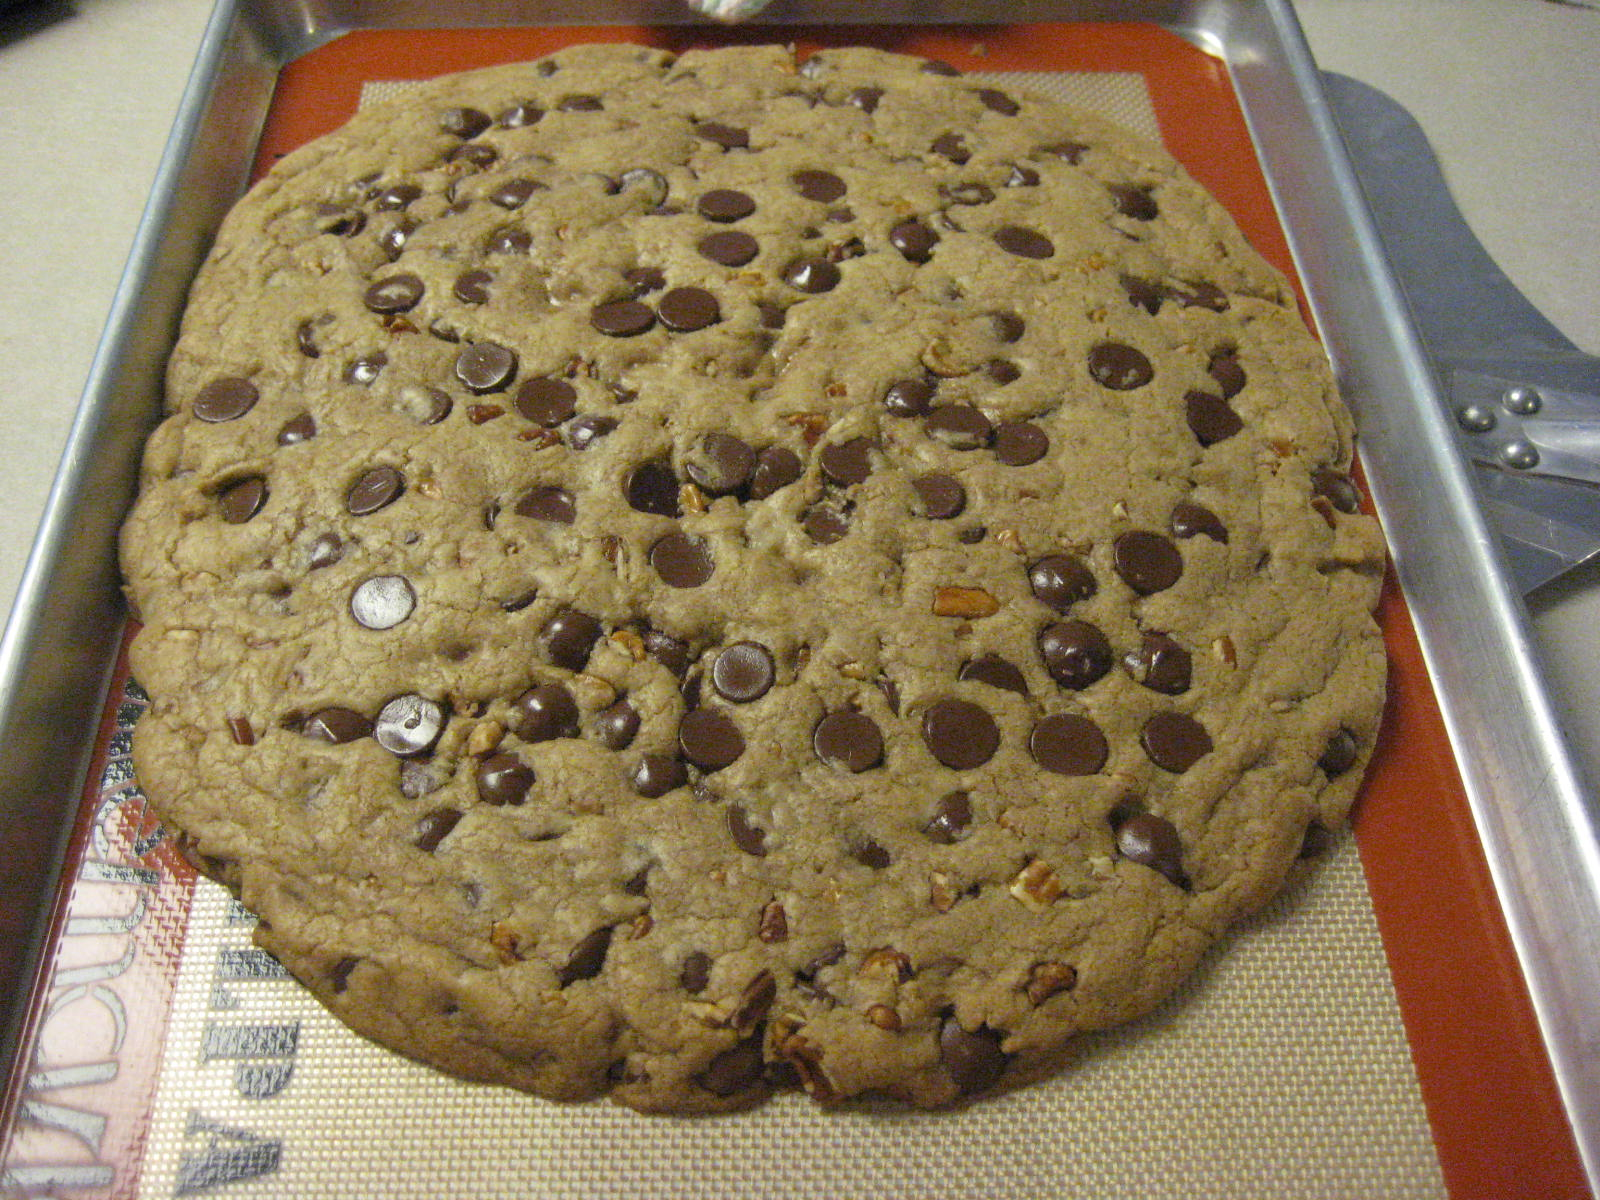 Midwest Baker: The Giant Cookie